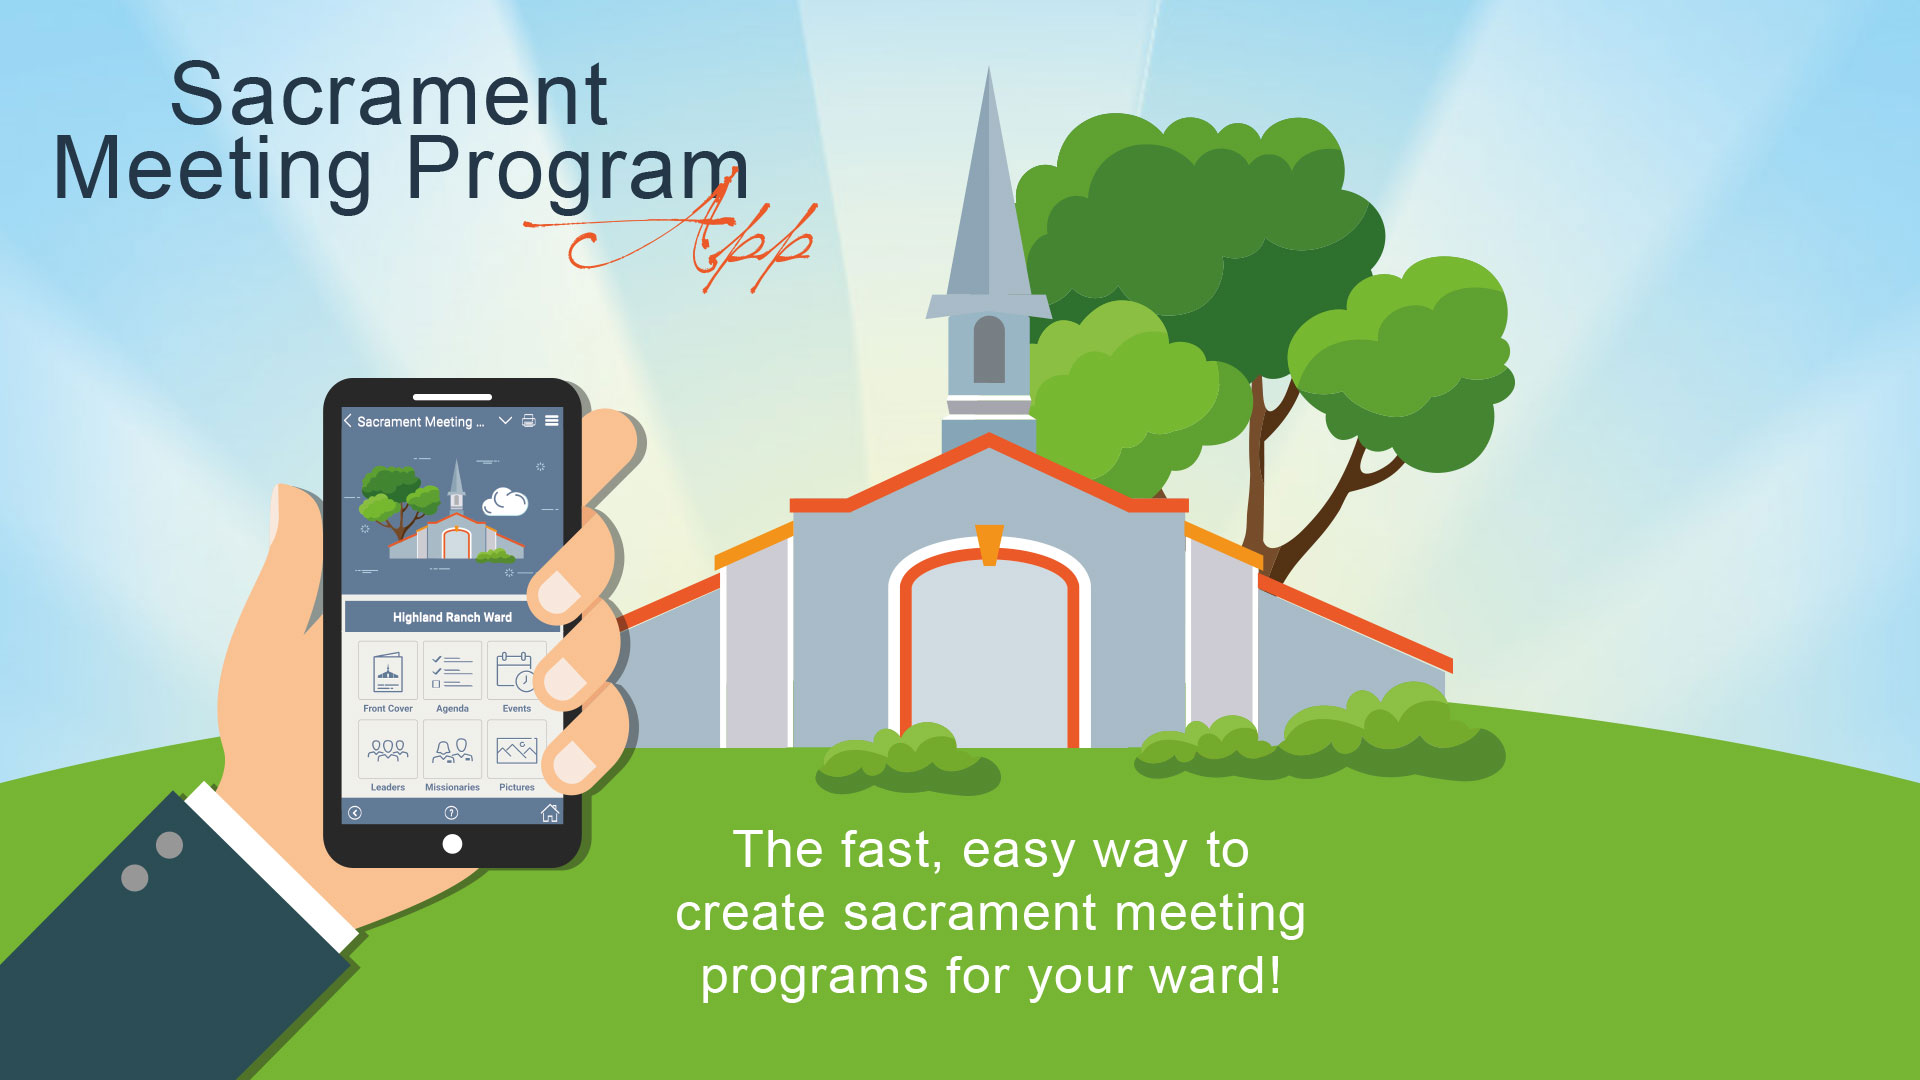 We can save time, money and trees by using the digital Sacrament Meeting Program app!